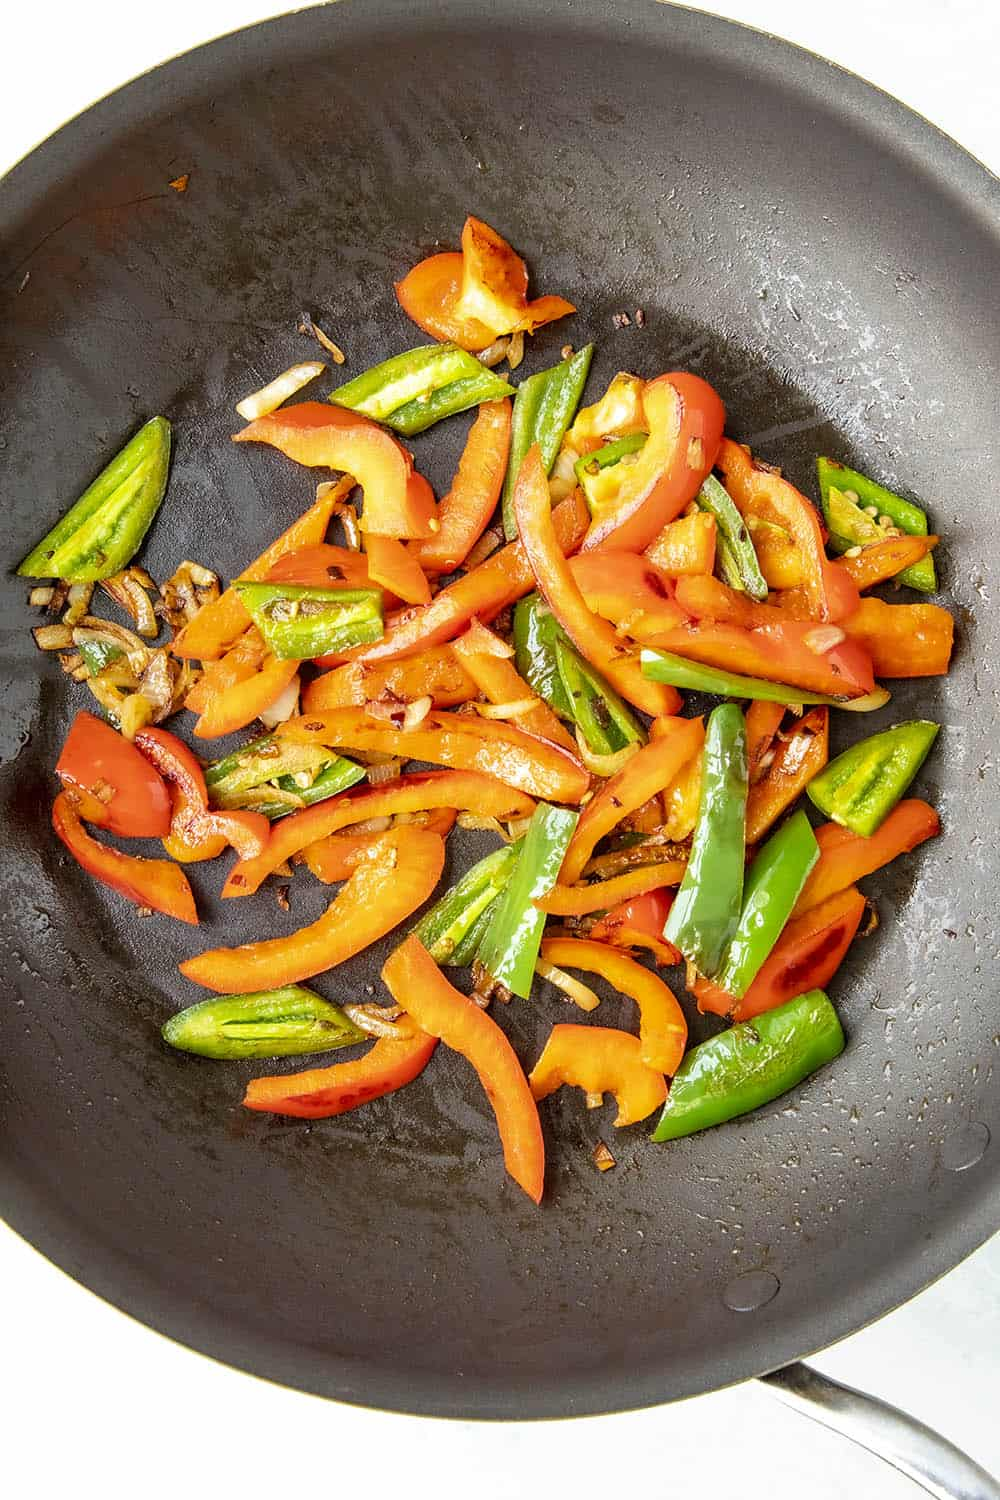 Cooking down peppers for a pepper and egg sandwich